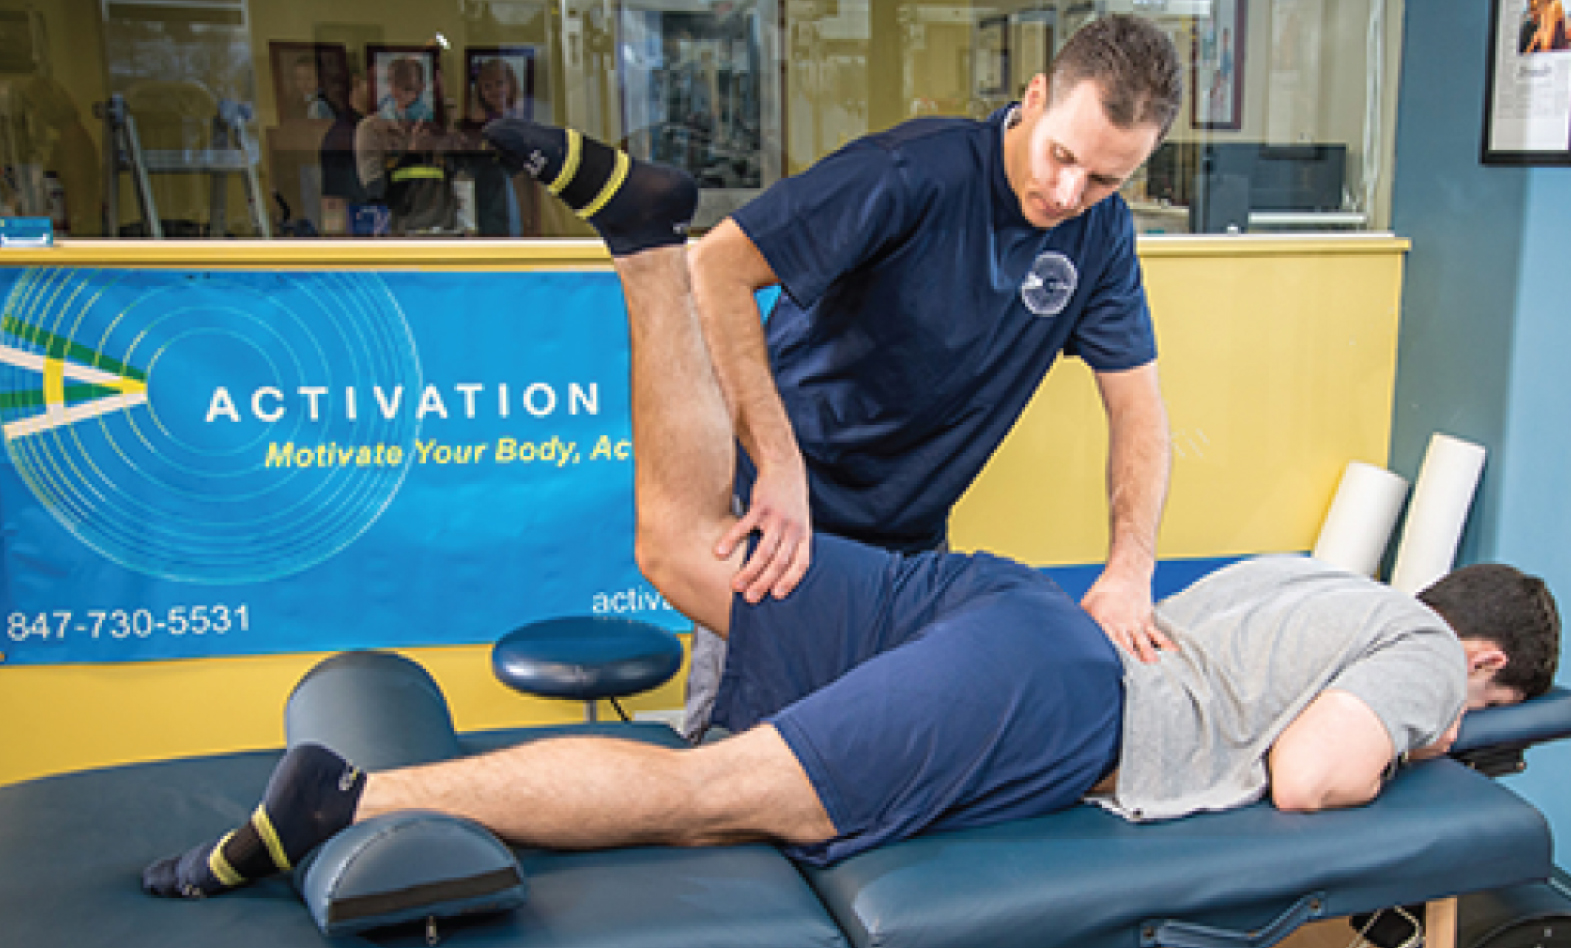 Activation-Fitness-Steve-and-Client-on-Table